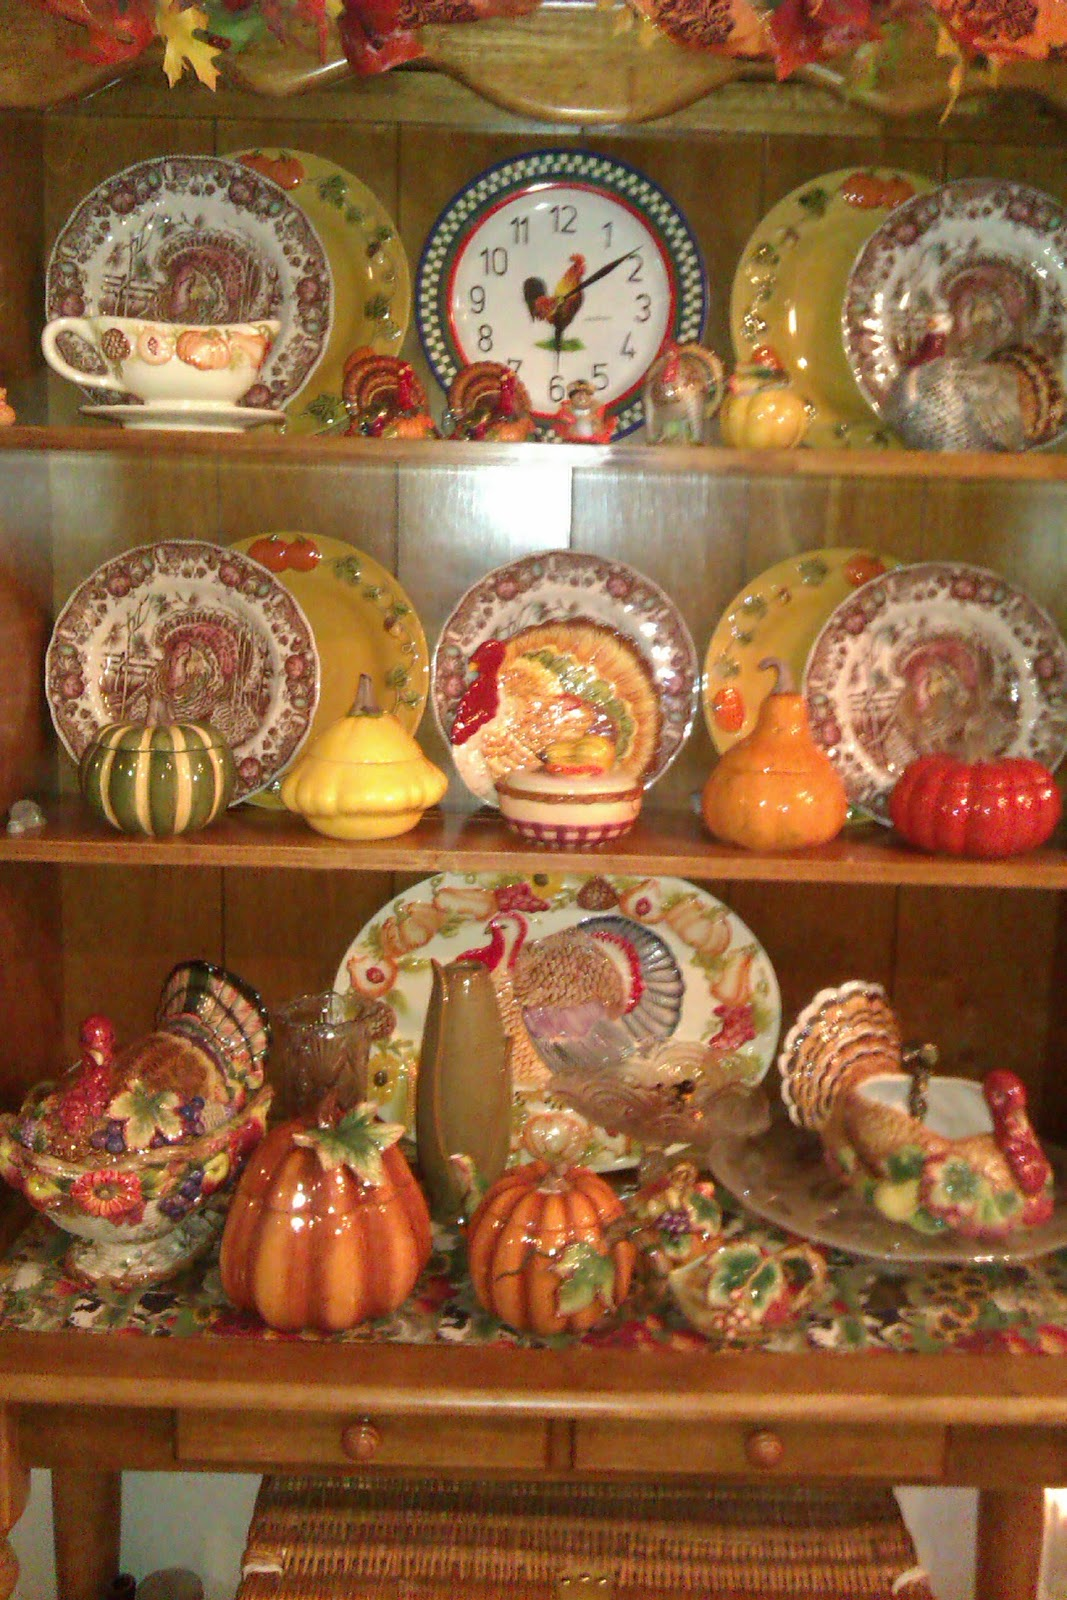 J Thaddeus Ozark S Cookie Jars And Other Larks Time For Turkeys